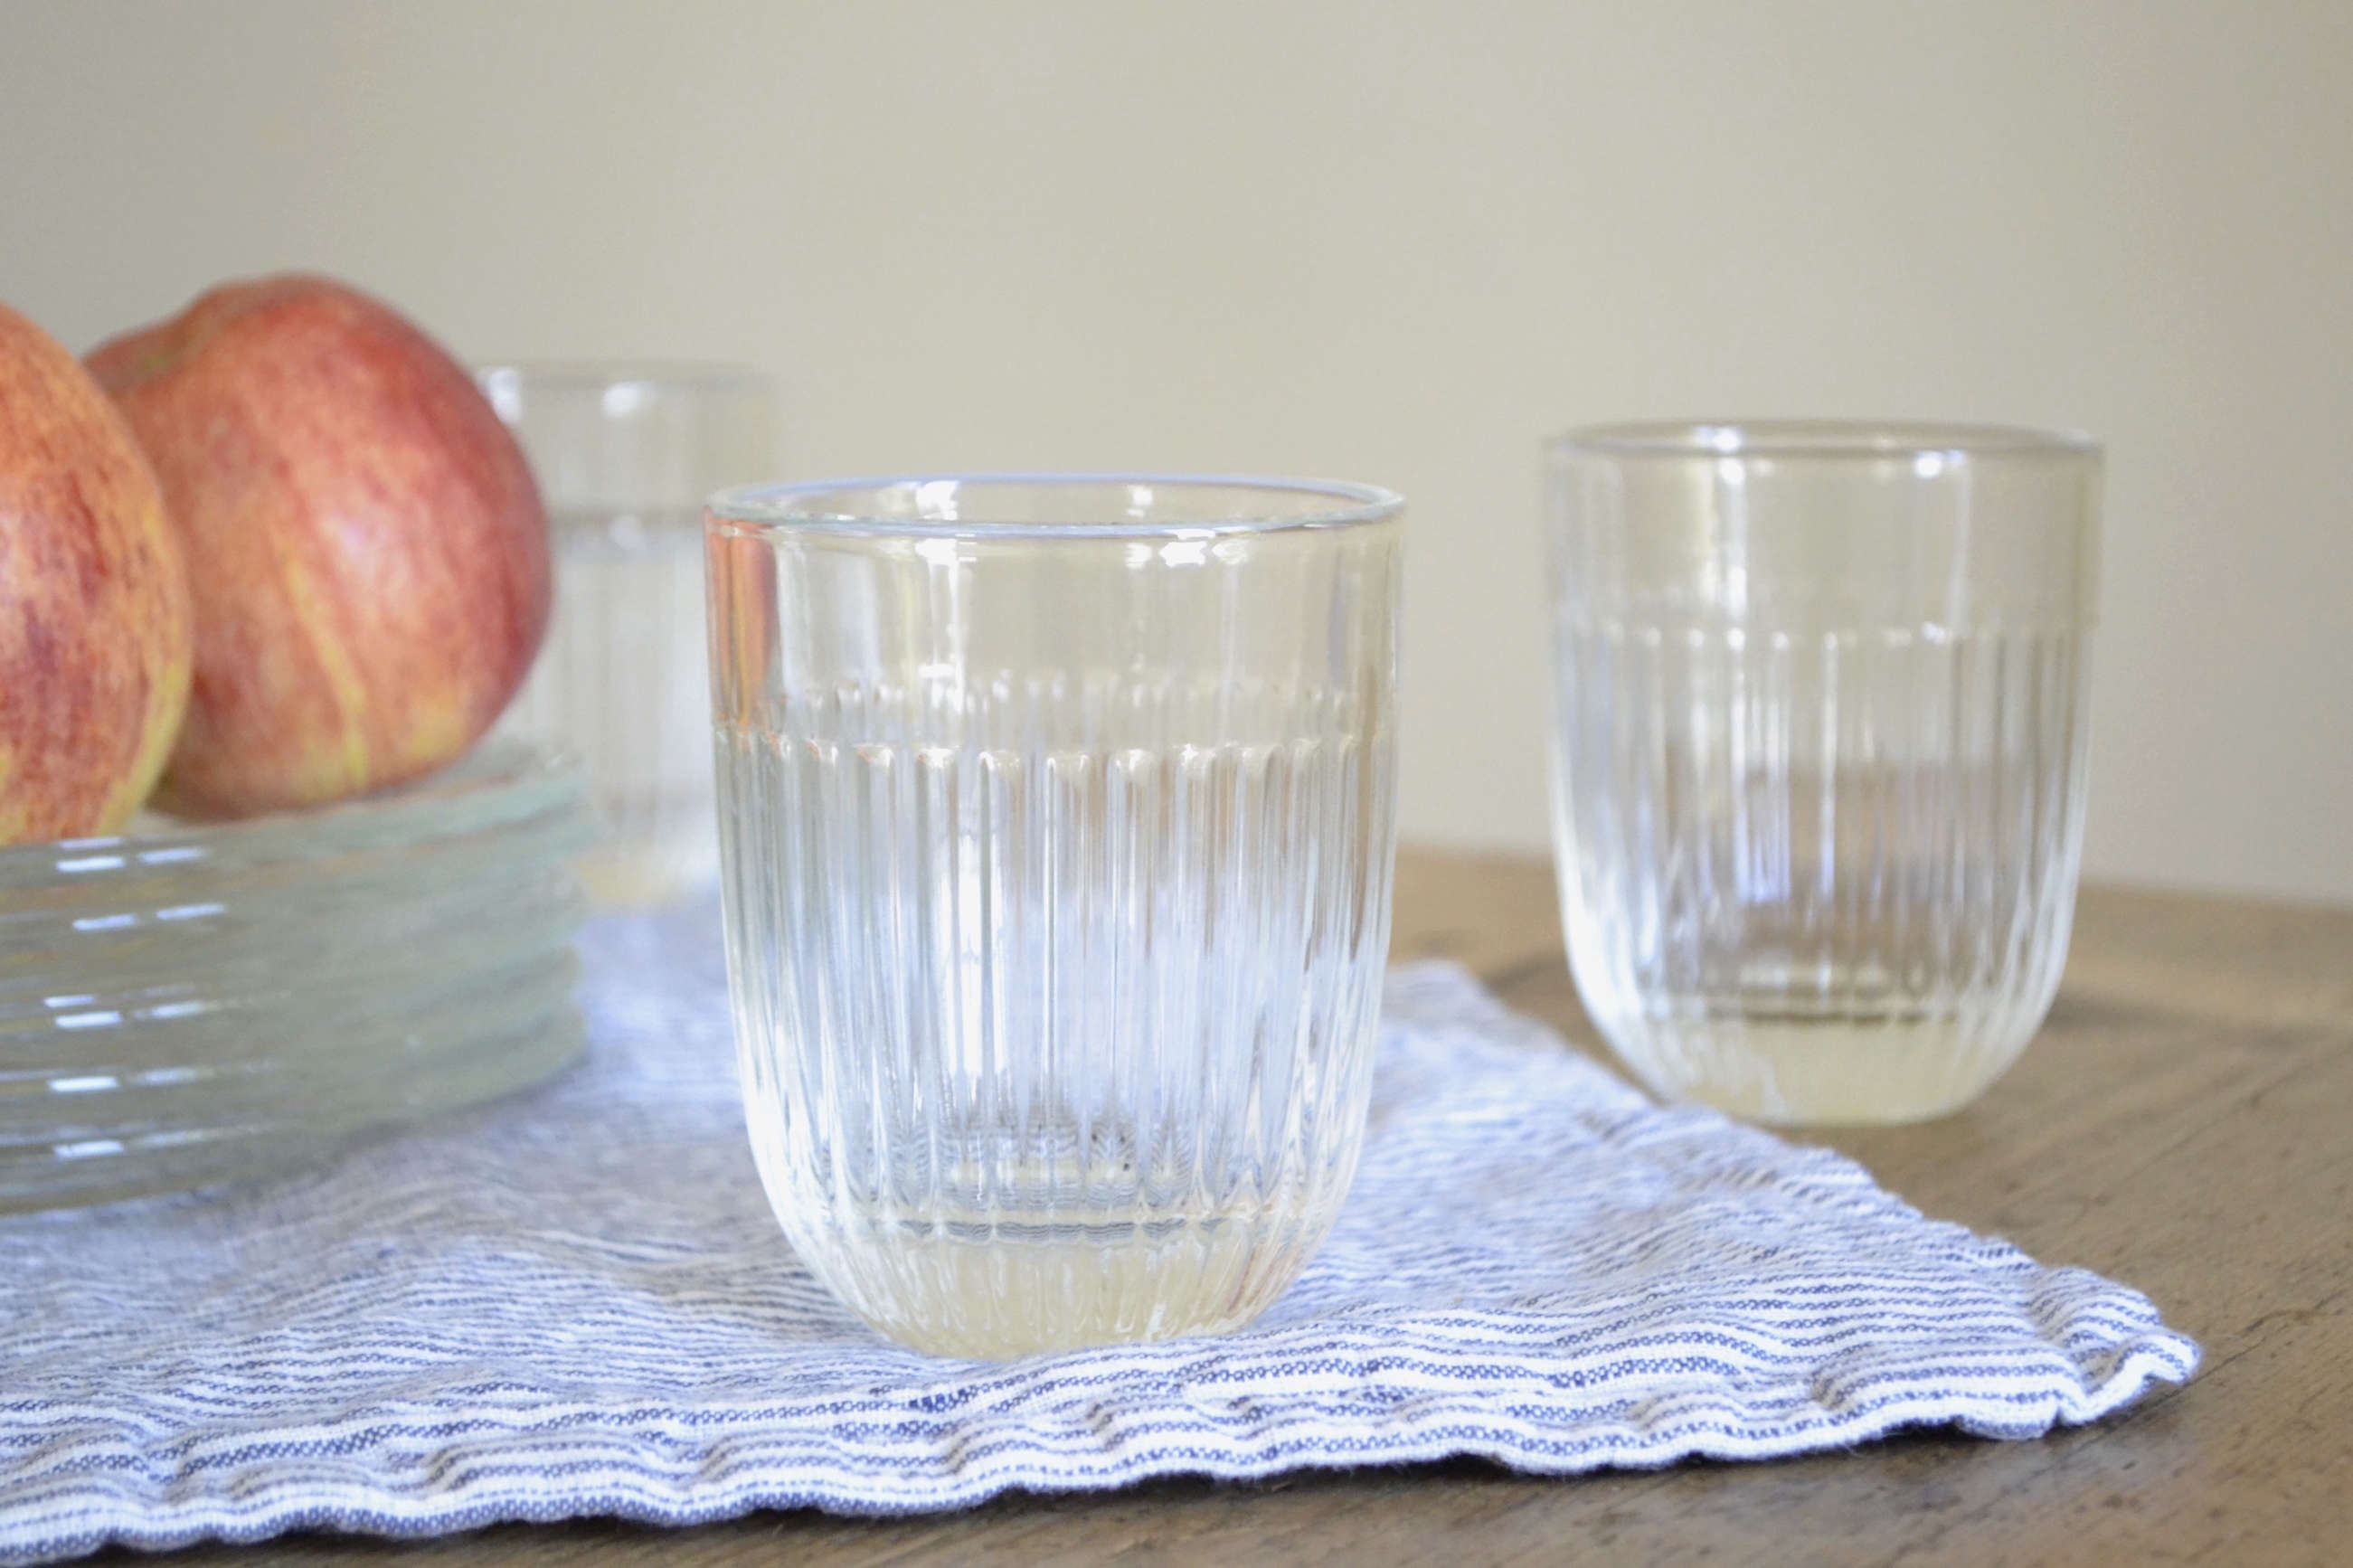 le roychere french ribbed glasses from le reperes des belettes | remodelista 14